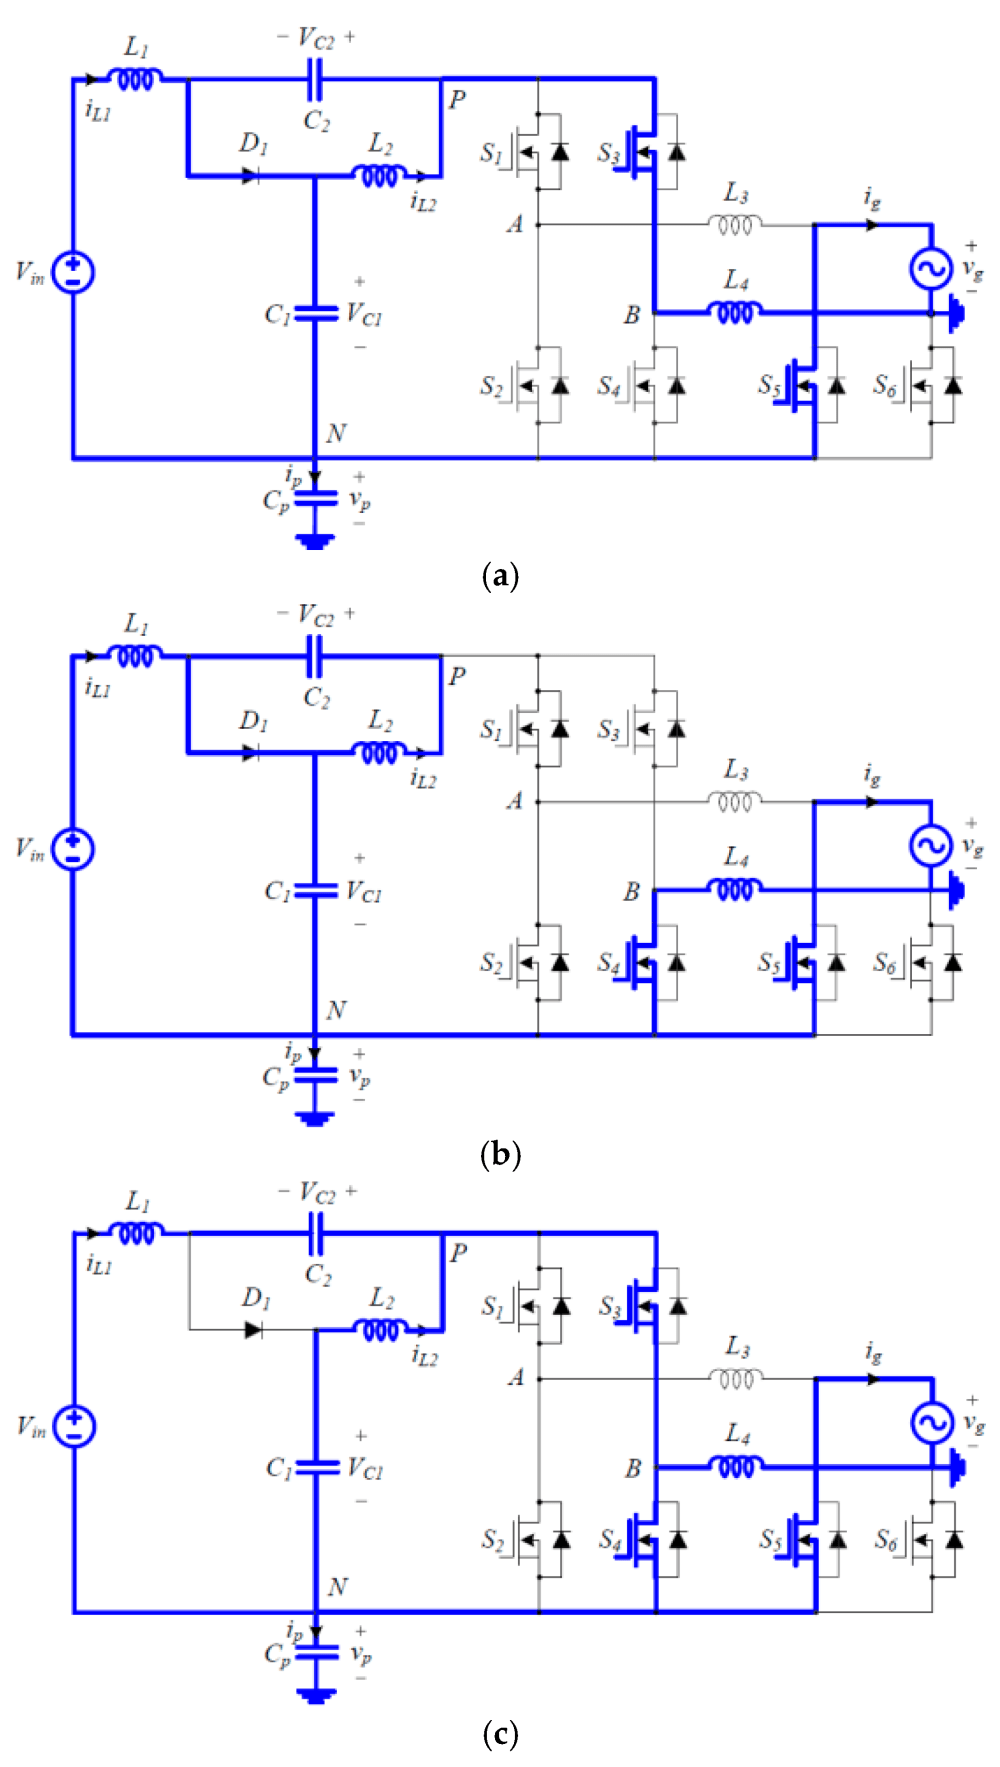 medium resolution of electronics 08 00312 g004 figure 4 switching circuit diagrams of the proposed inverter